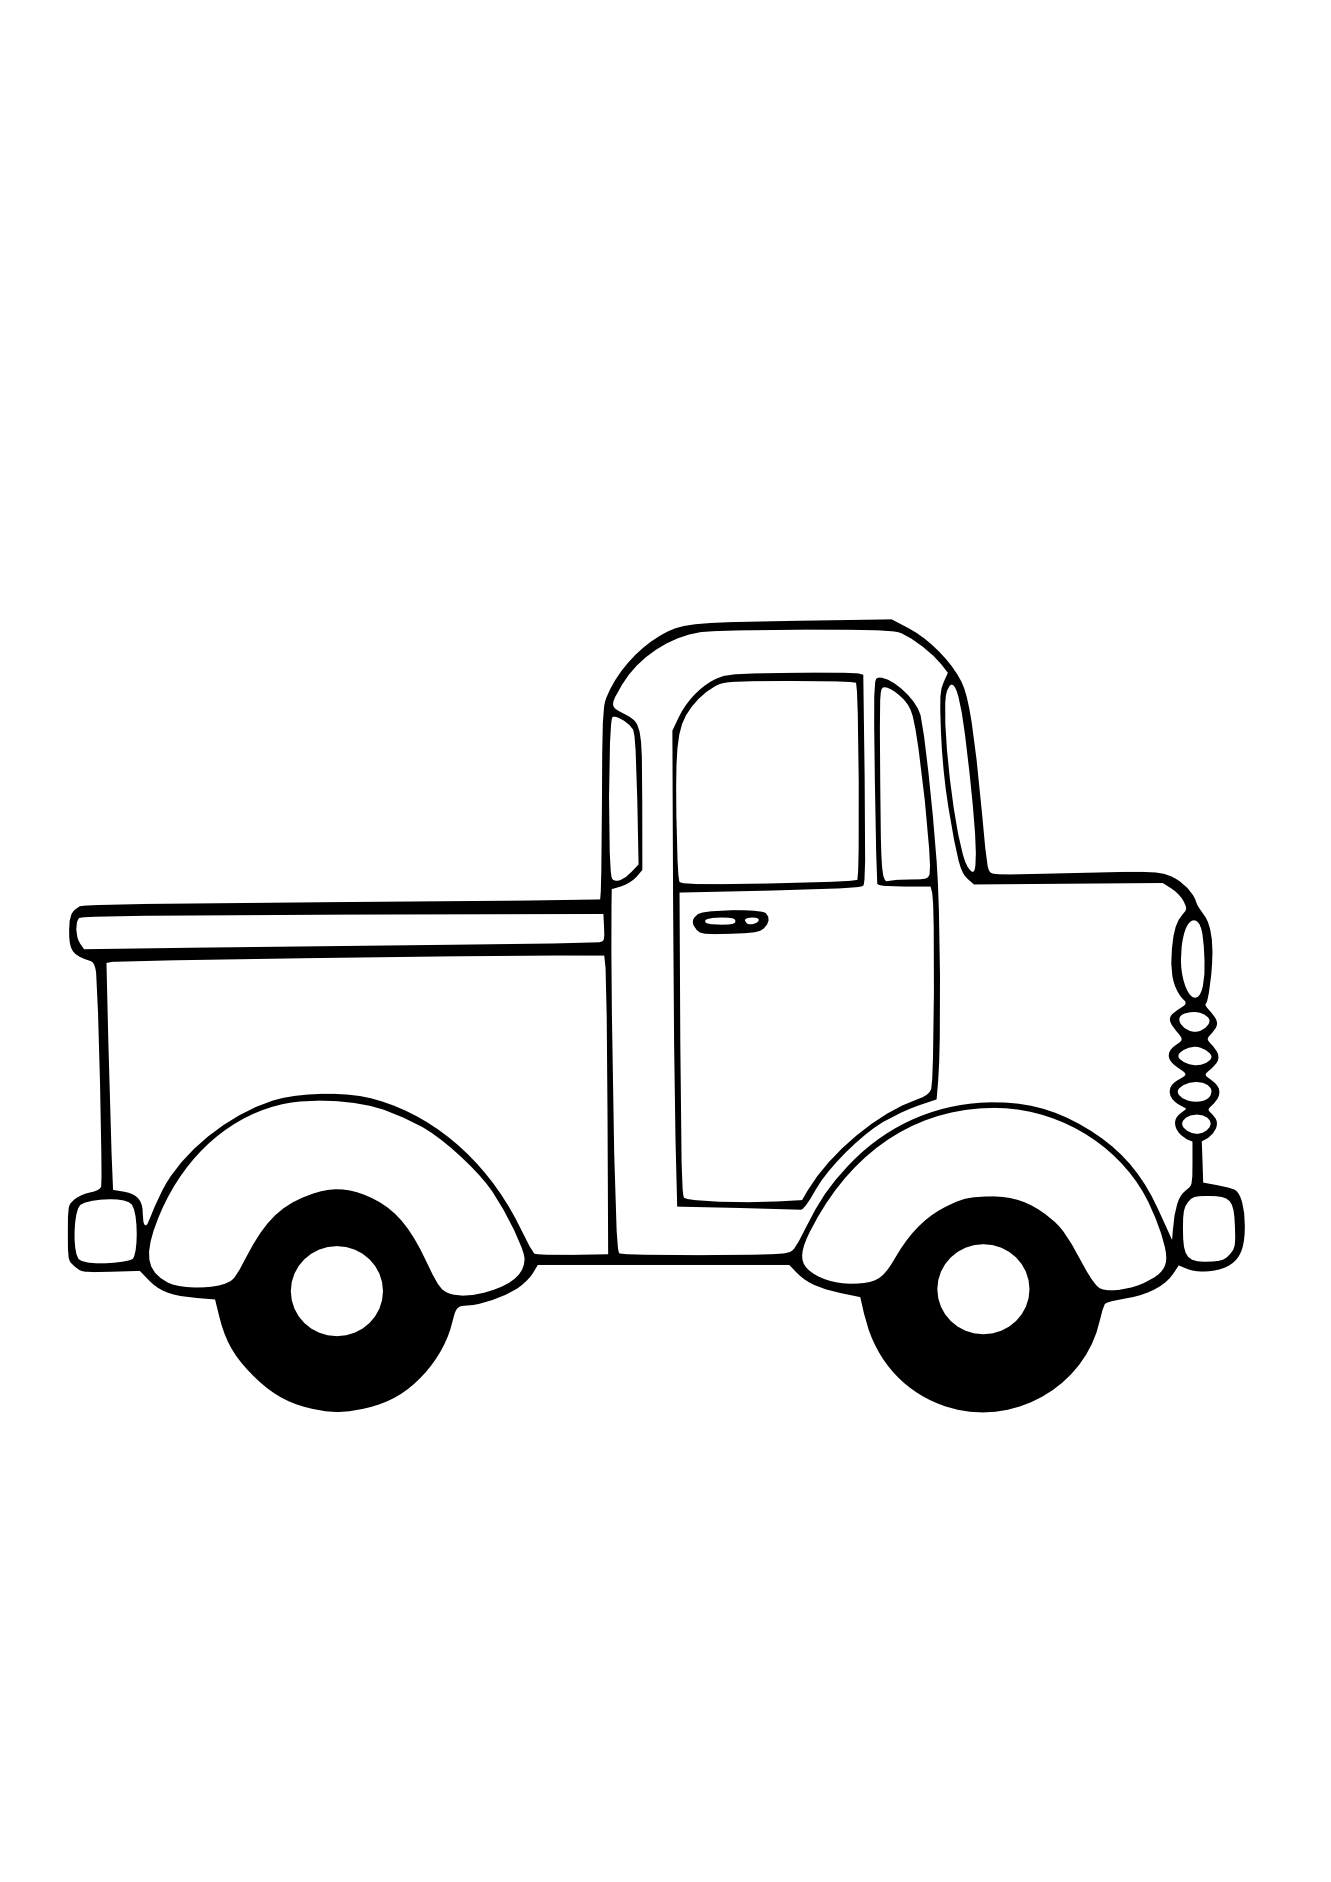 Trucks and plane clipart image transparent stock Clipart car truck and plane for coloring - ClipartFest image transparent stock